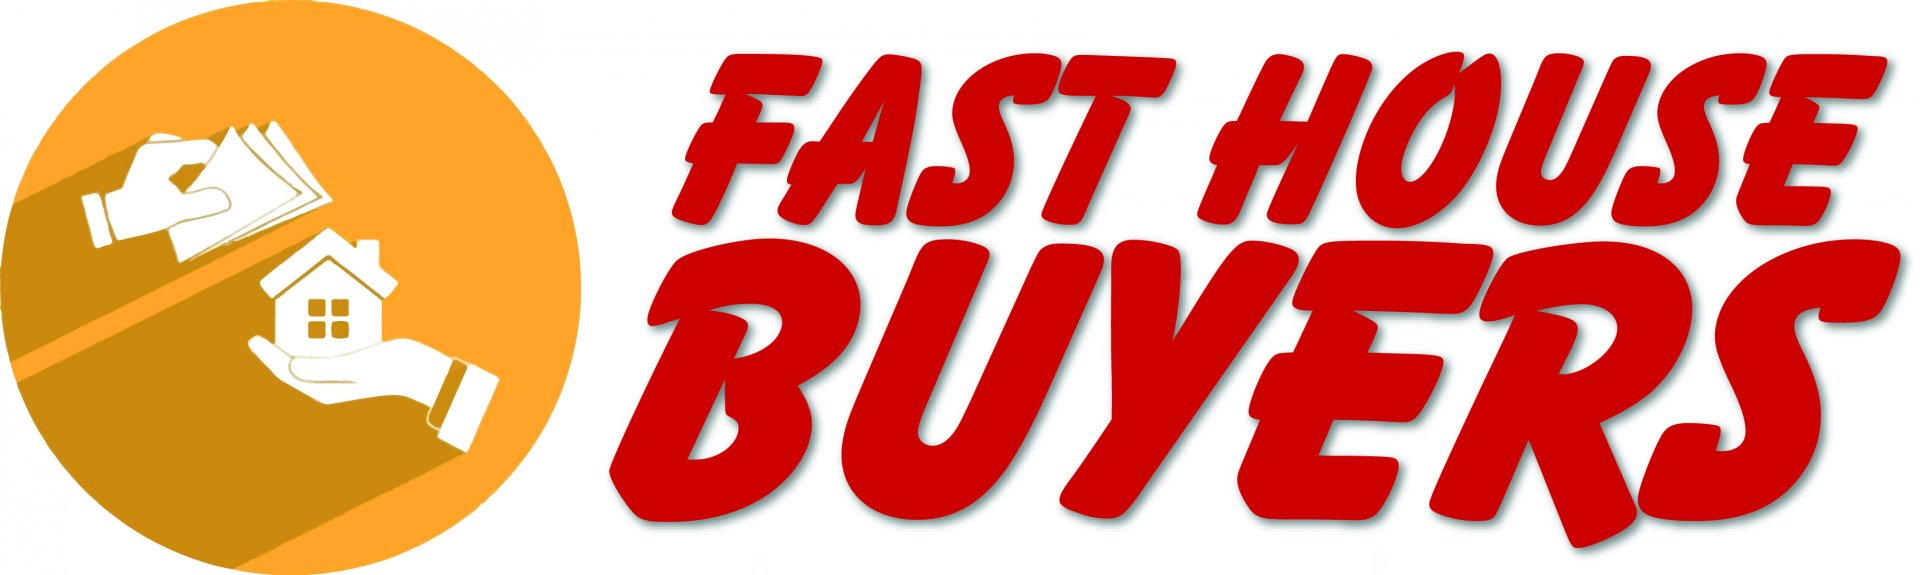 Fast House Buyers- Whole Sale Properties